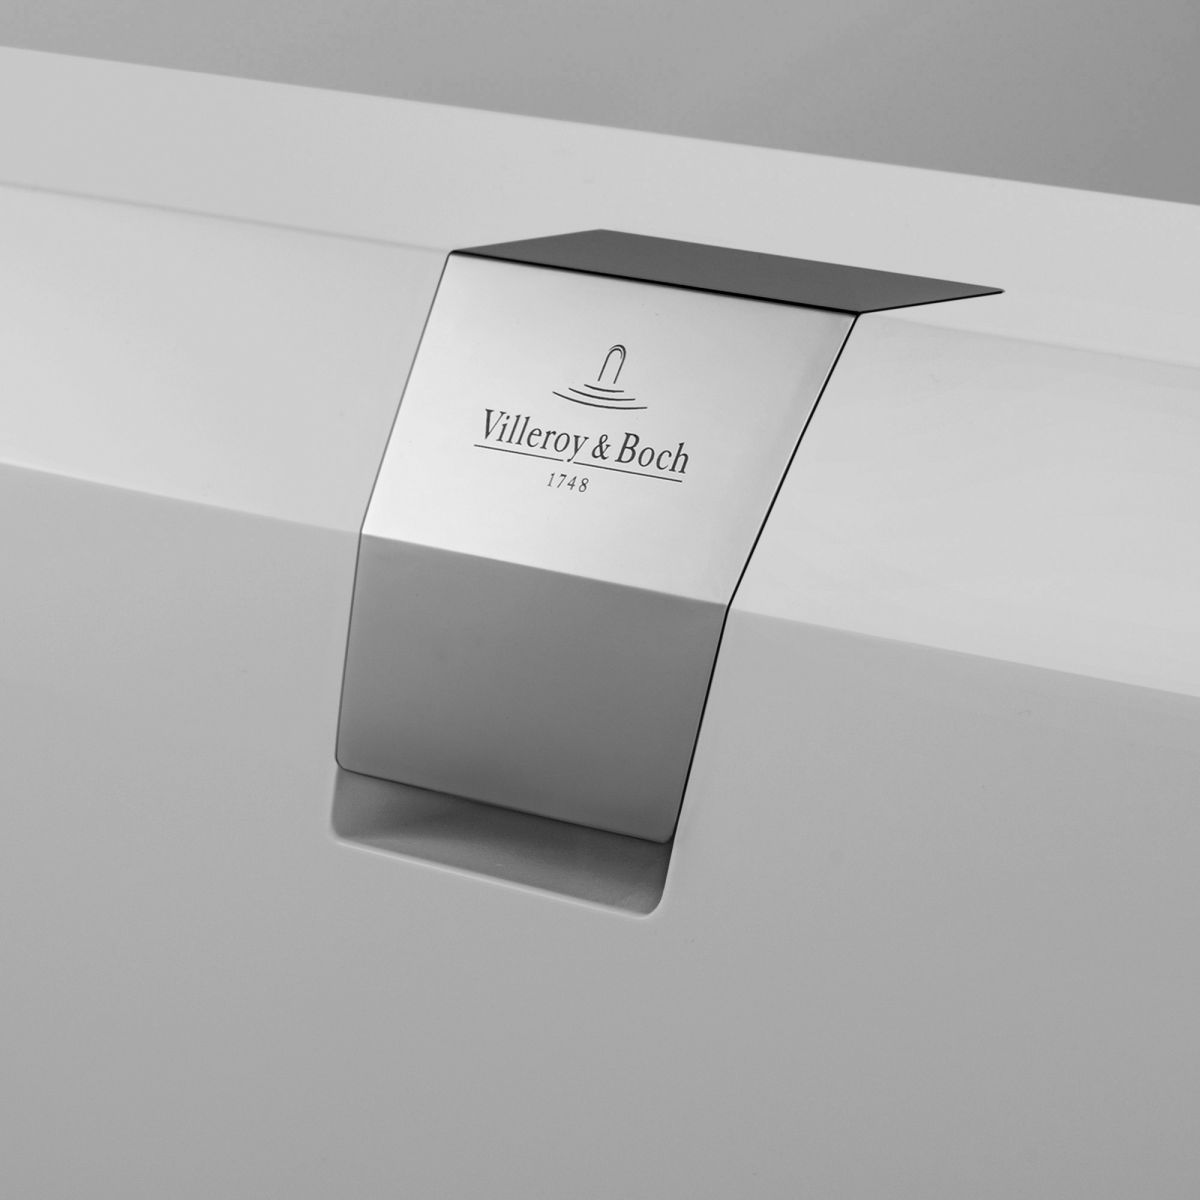 Villeroy and boch squaro edge 12 luxury bath uk bathrooms - Villeroy y bosch ...